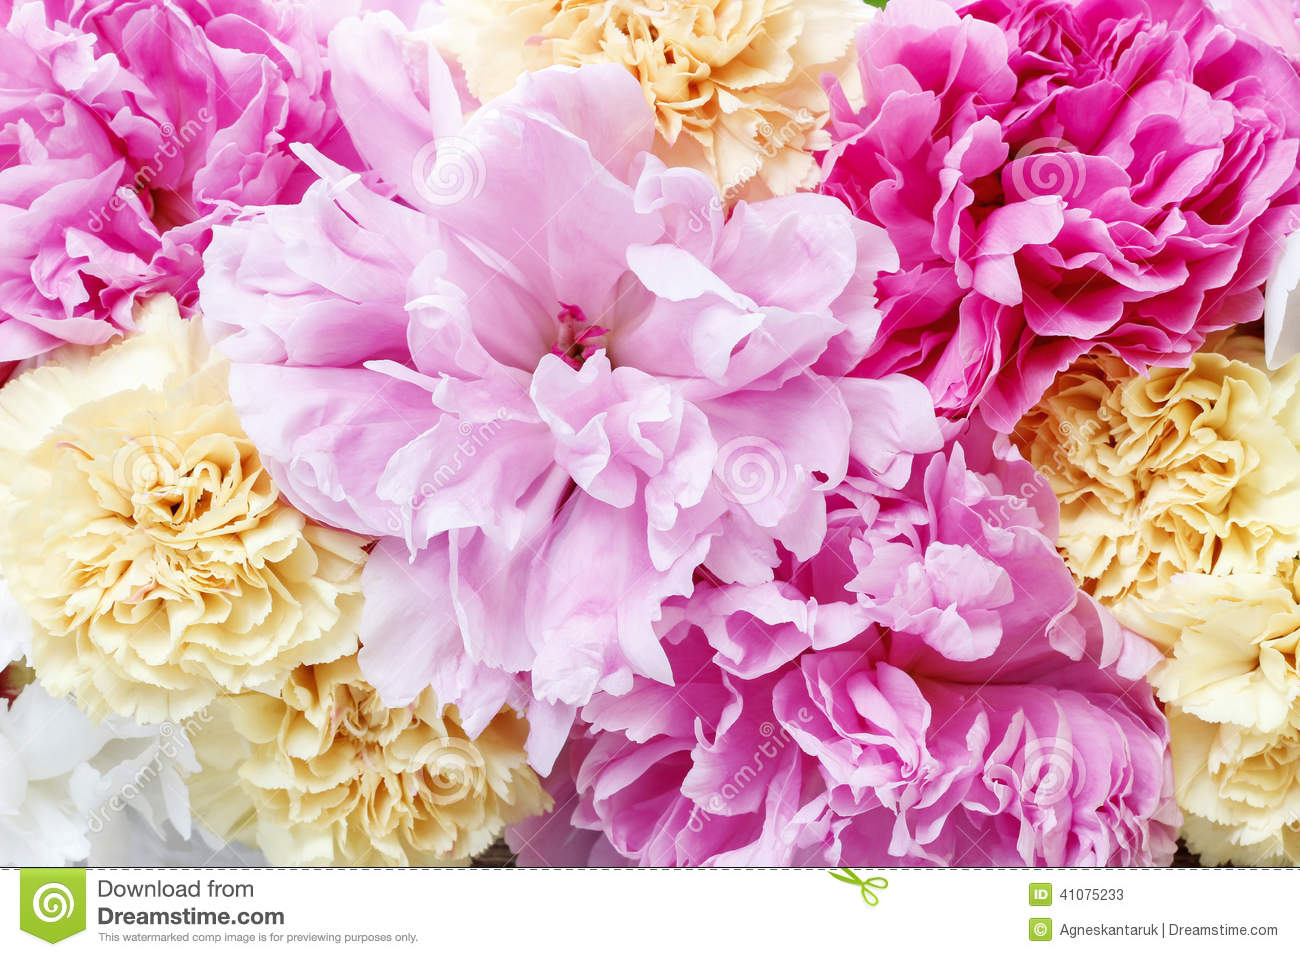 The Pink Peonies stunning pink peonies, yellow carnations and roses stock photo